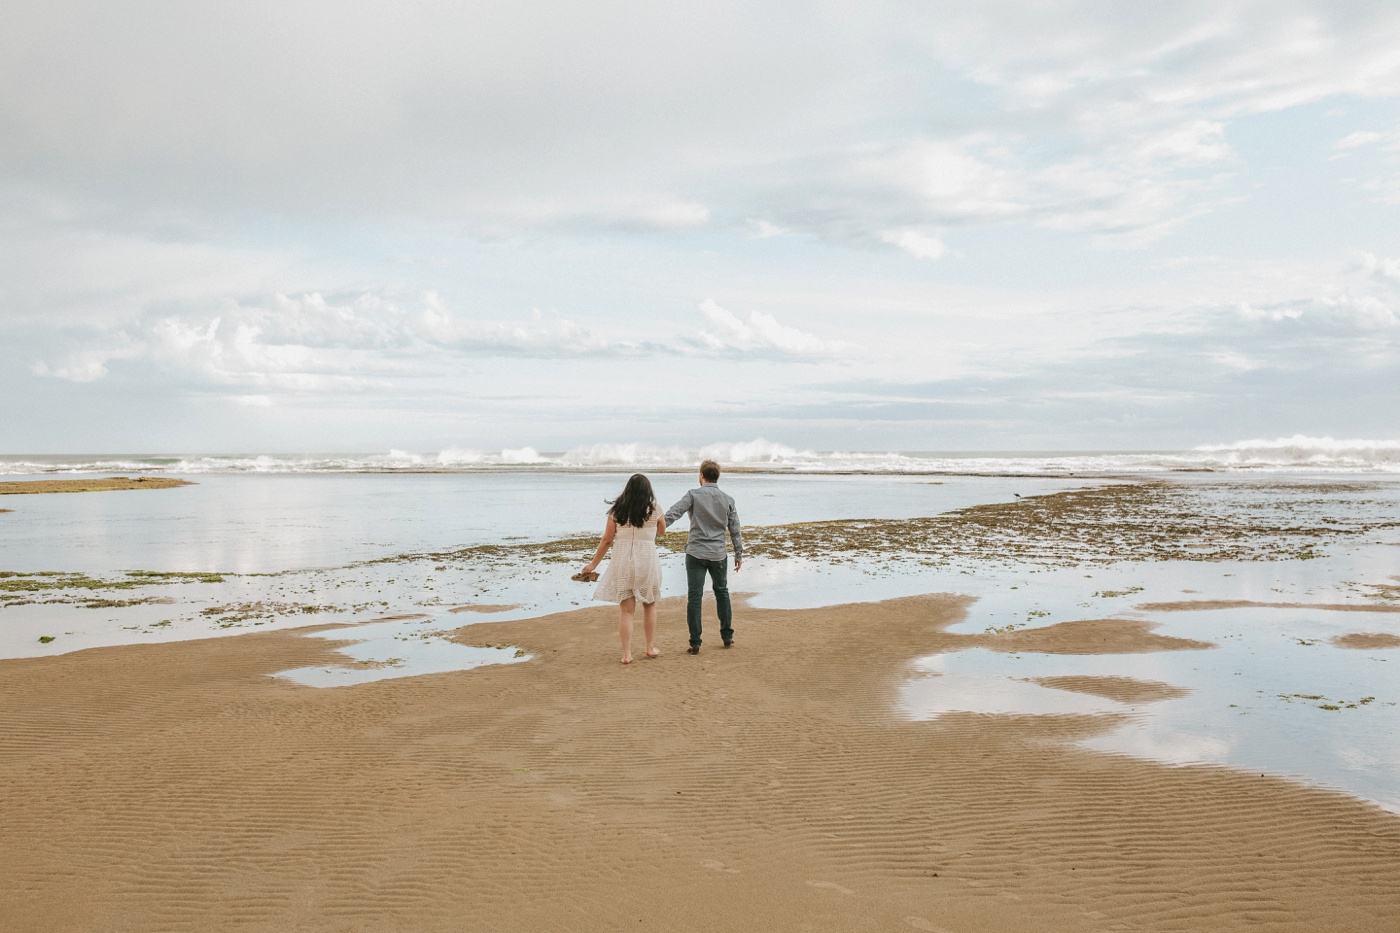 alliedave_mornington-peninsula-back-beach-relaxed-engagement-session_melbourne-candid-wedding-photographer_18